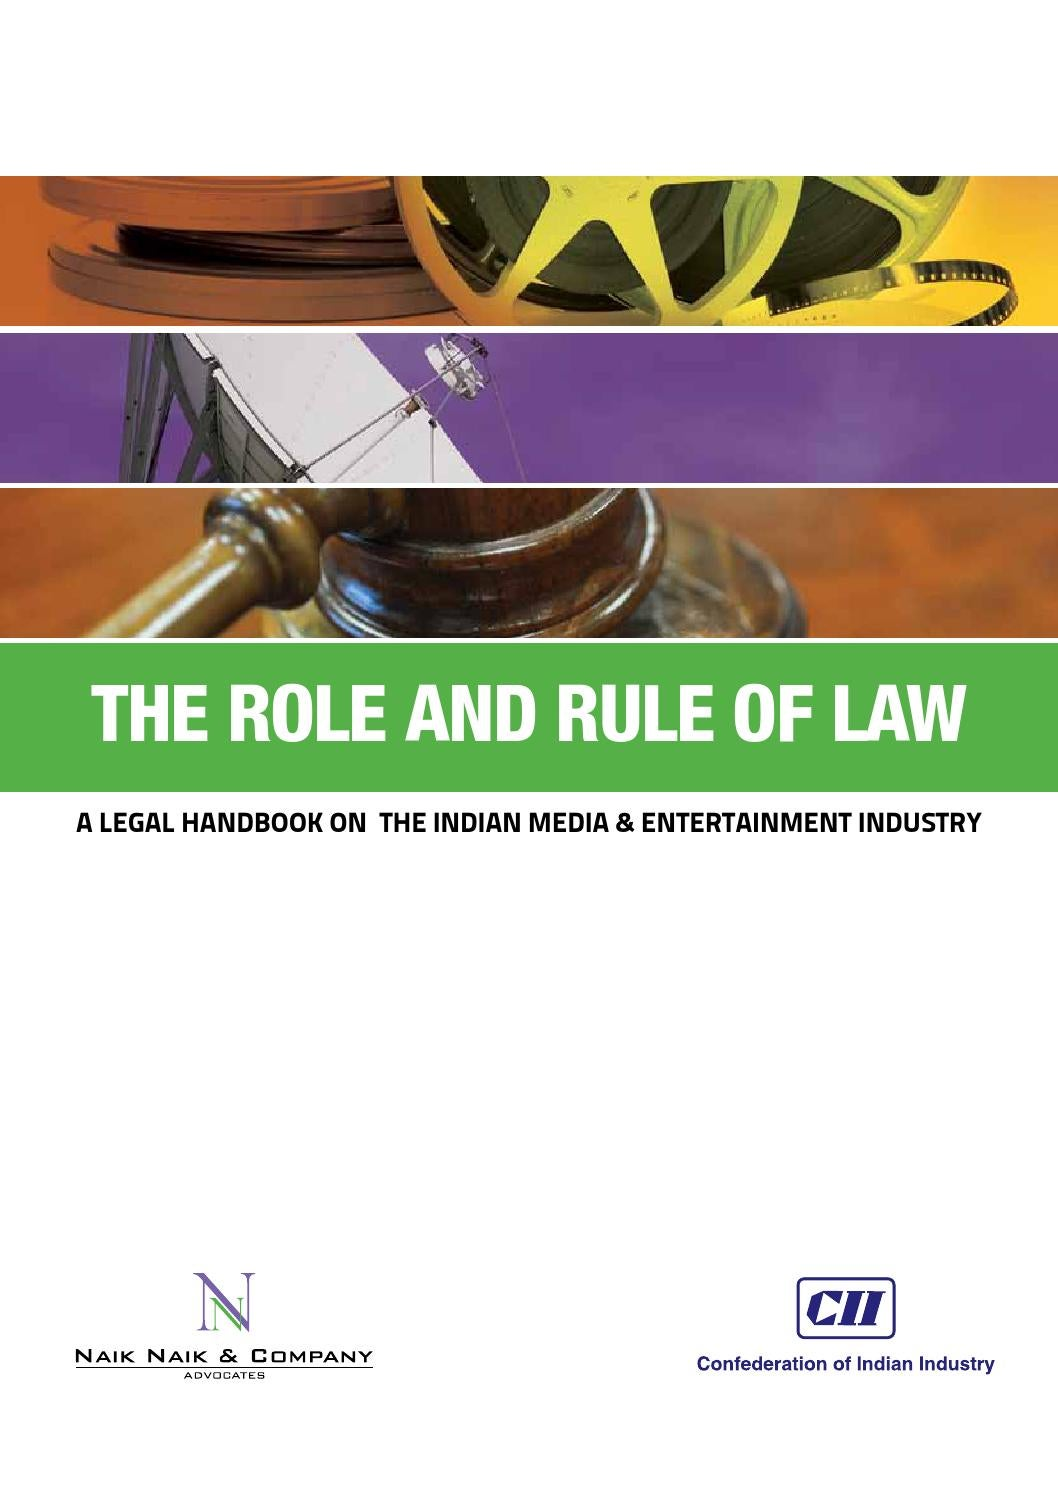 courtroom workgroups essay Implementing the key components of specialized drug treatment courts: practice and policy considerations authors david olson, loyola university chicago roles and power within federal problem solving courtroom workgroups, law & policy, 2012, 34, 4.